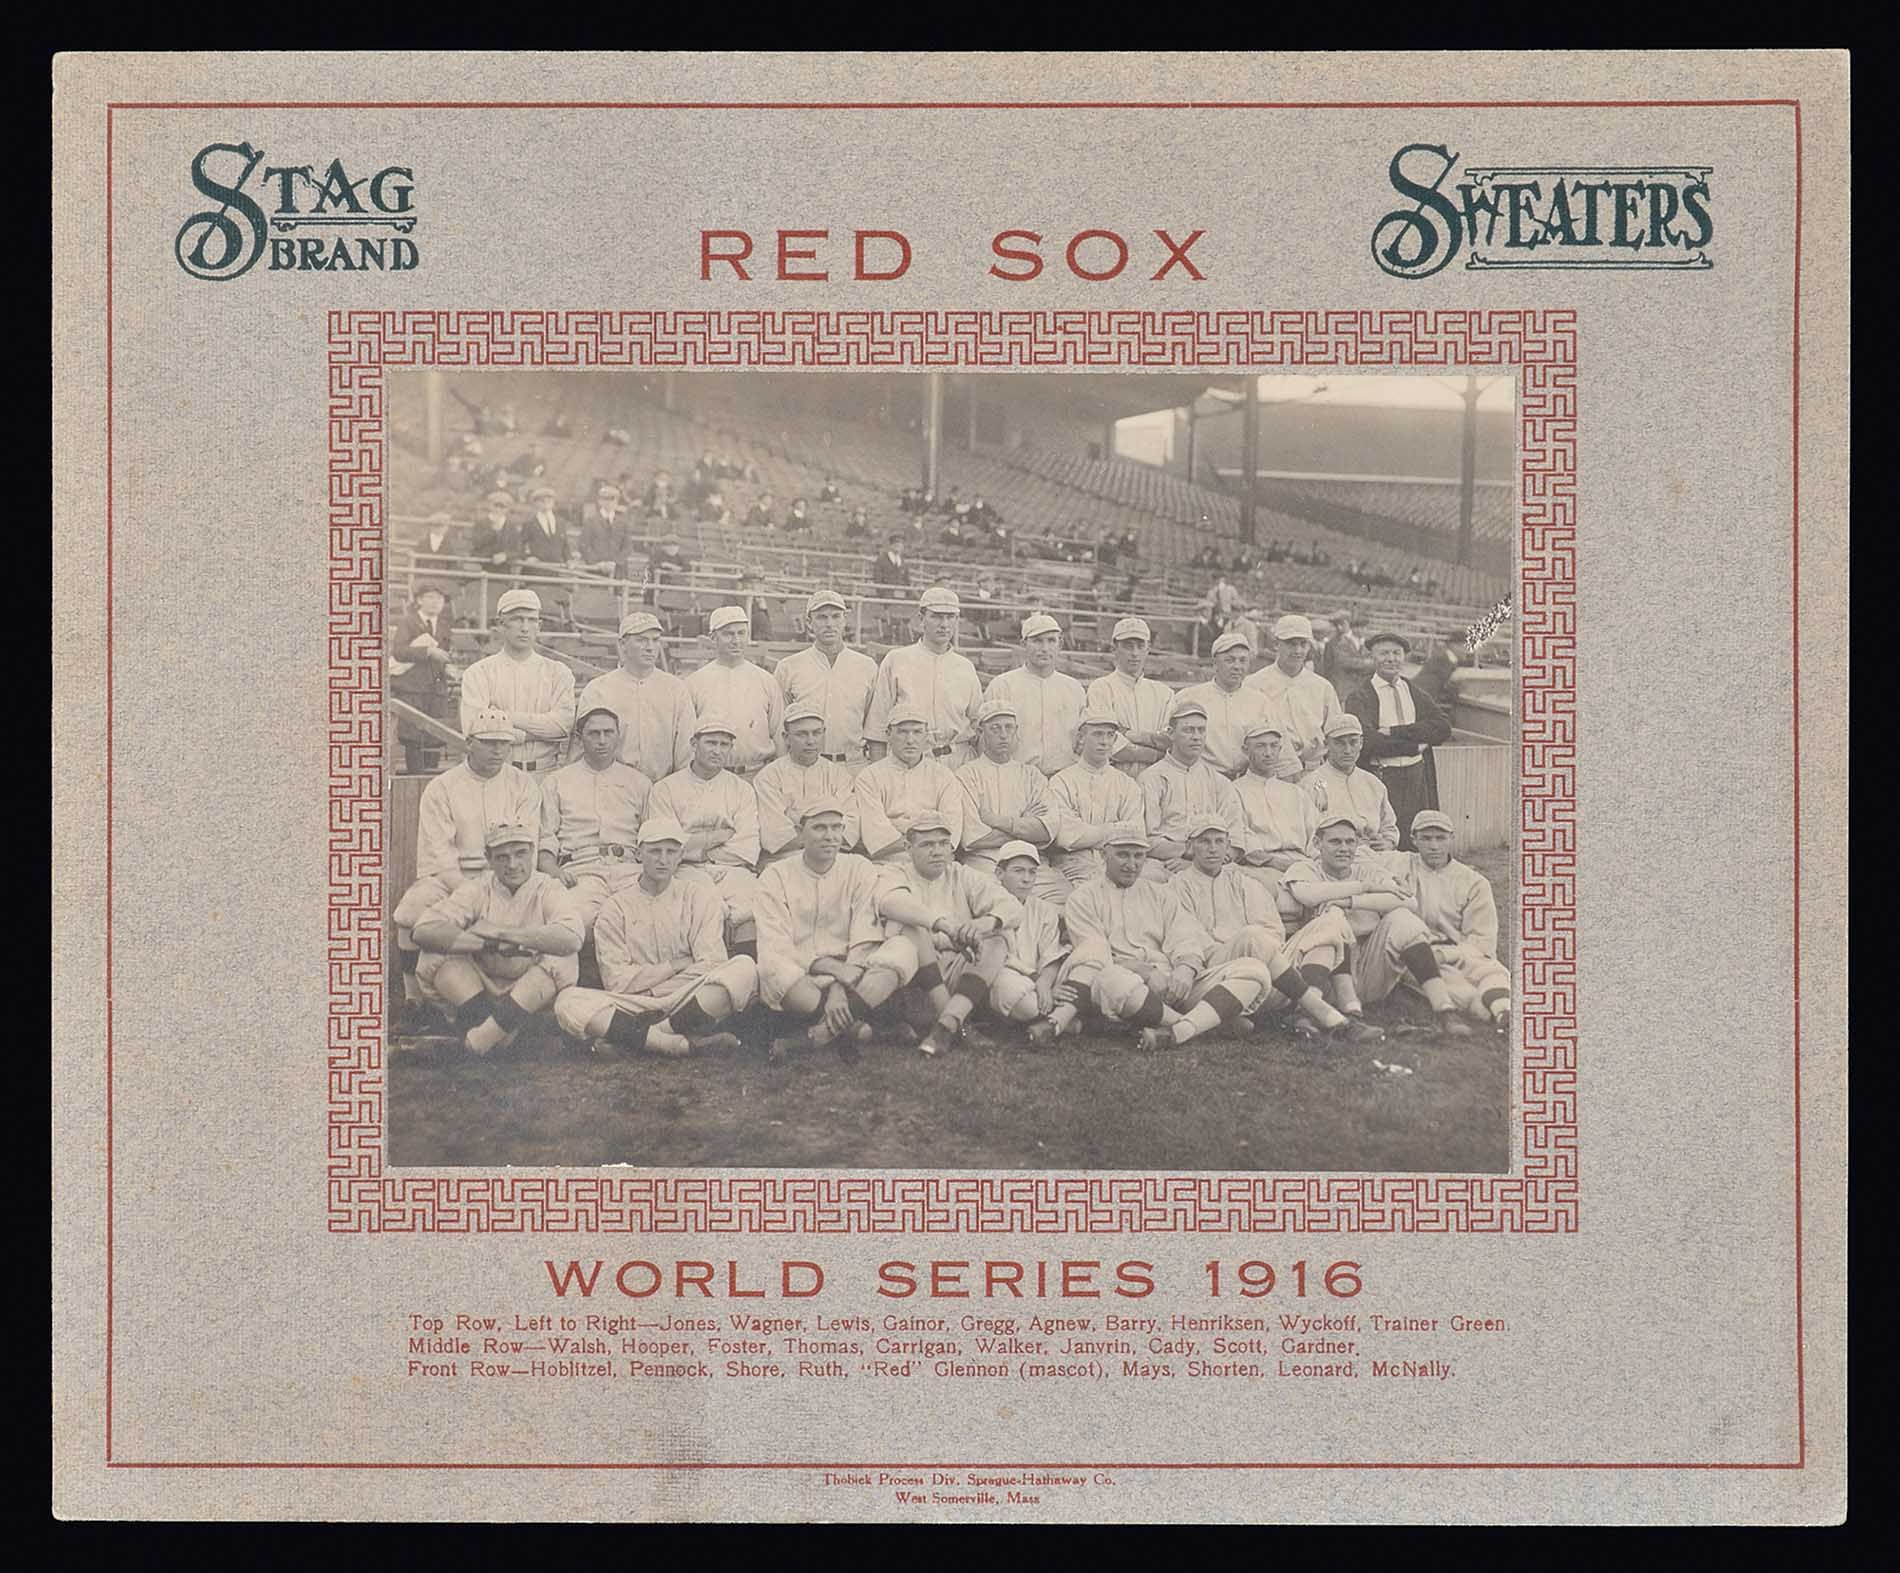 1916 Boston Red Sox Stag Brand Sweaters